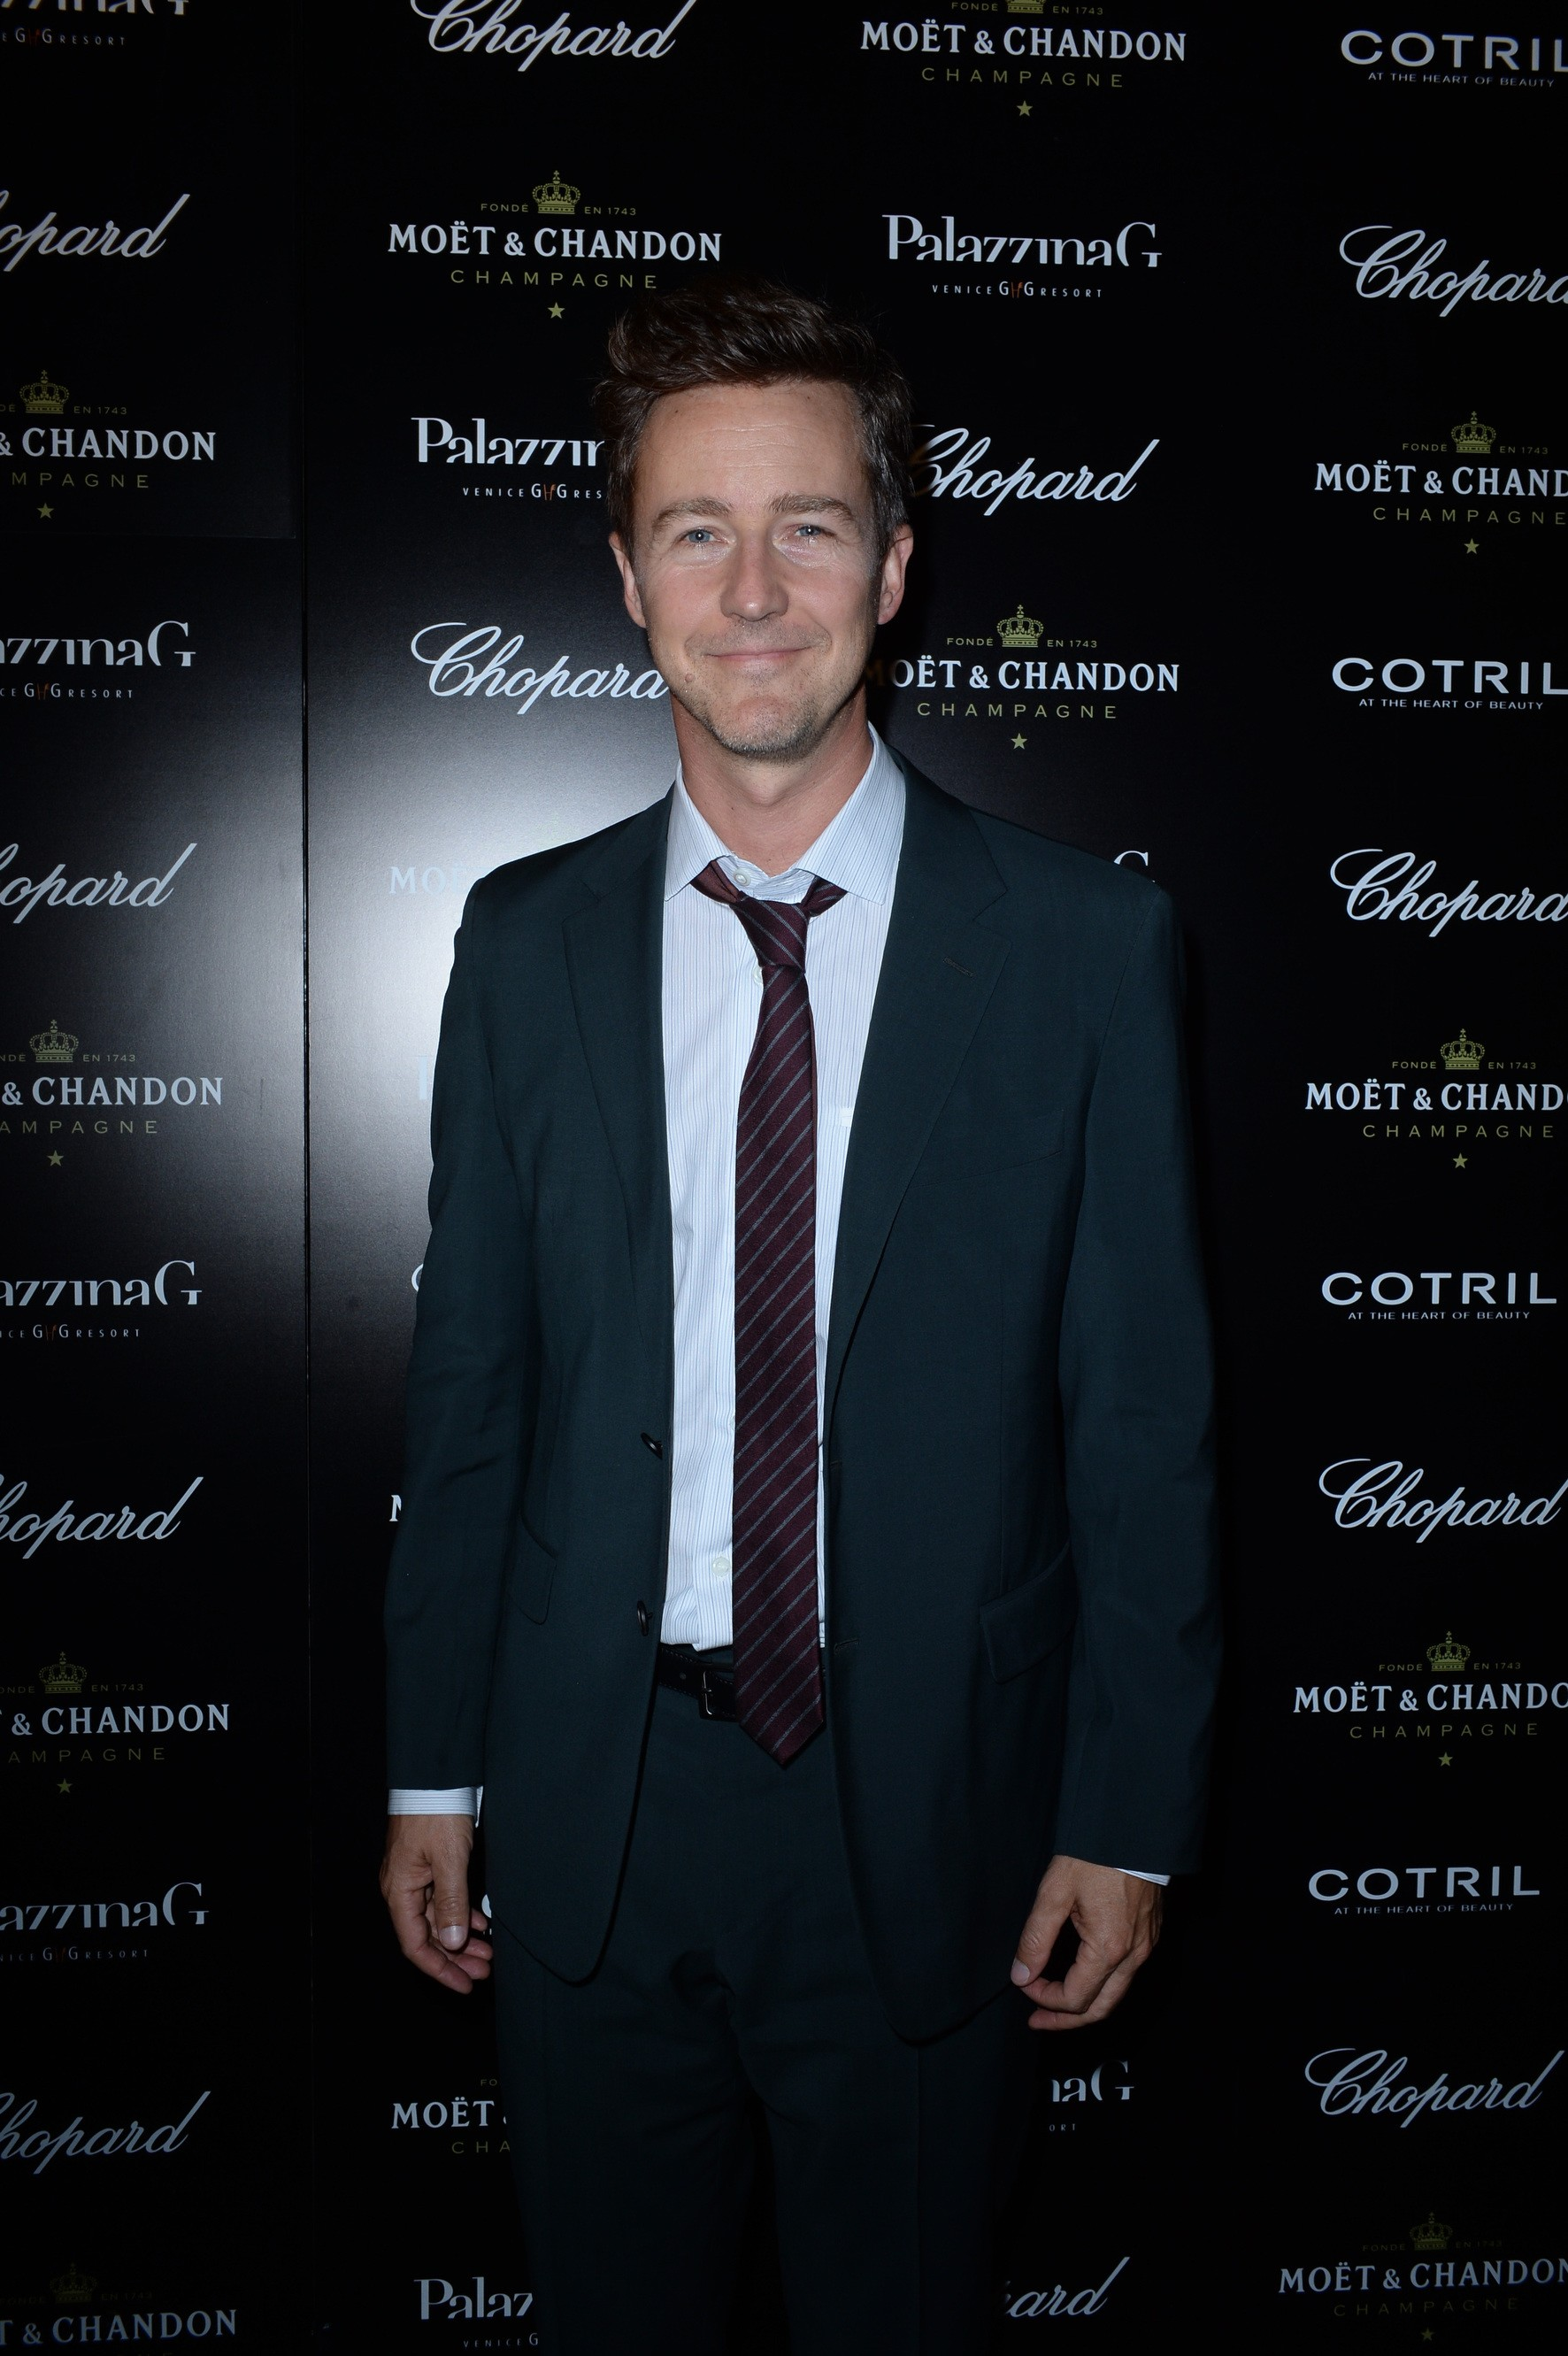 Ed Norton attends The PalazzinaG Hotel's 71st Venice Film Festival Opening Party sponsored by Chopard, Moët Chandon and Cotril.